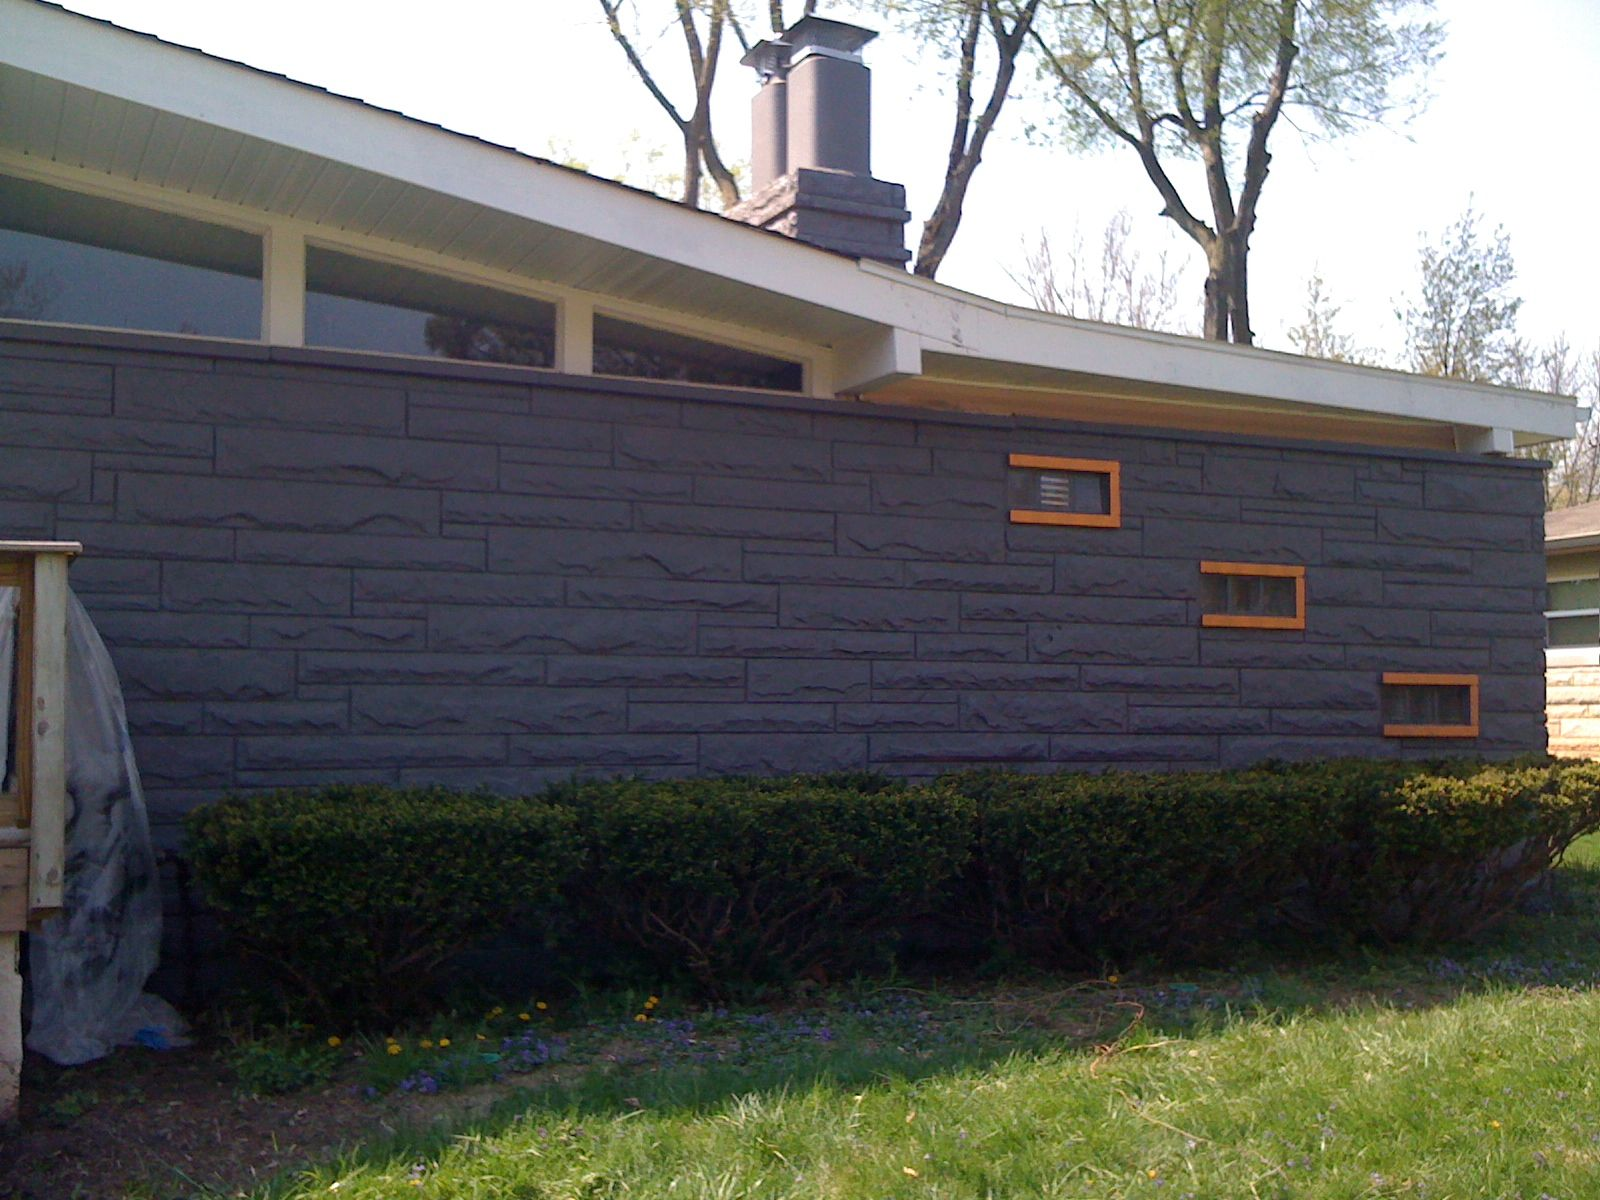 Mid century modern exterior house colors - Mid Century Modern Home Exterior Paint Colors Mid Century Modern 2 Decor Ideas